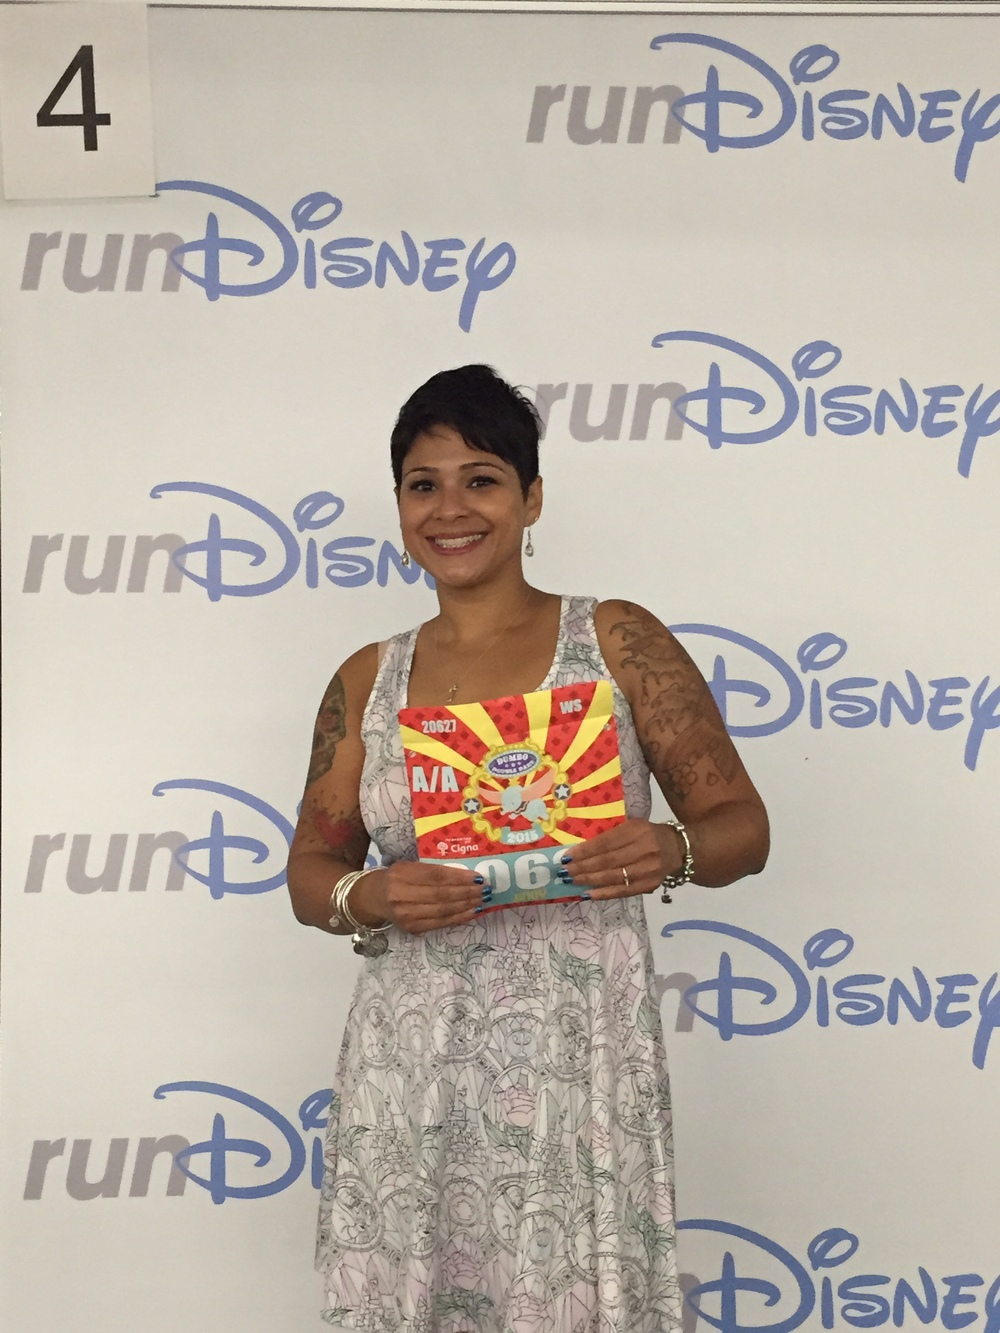 rundisney-expo.jpg